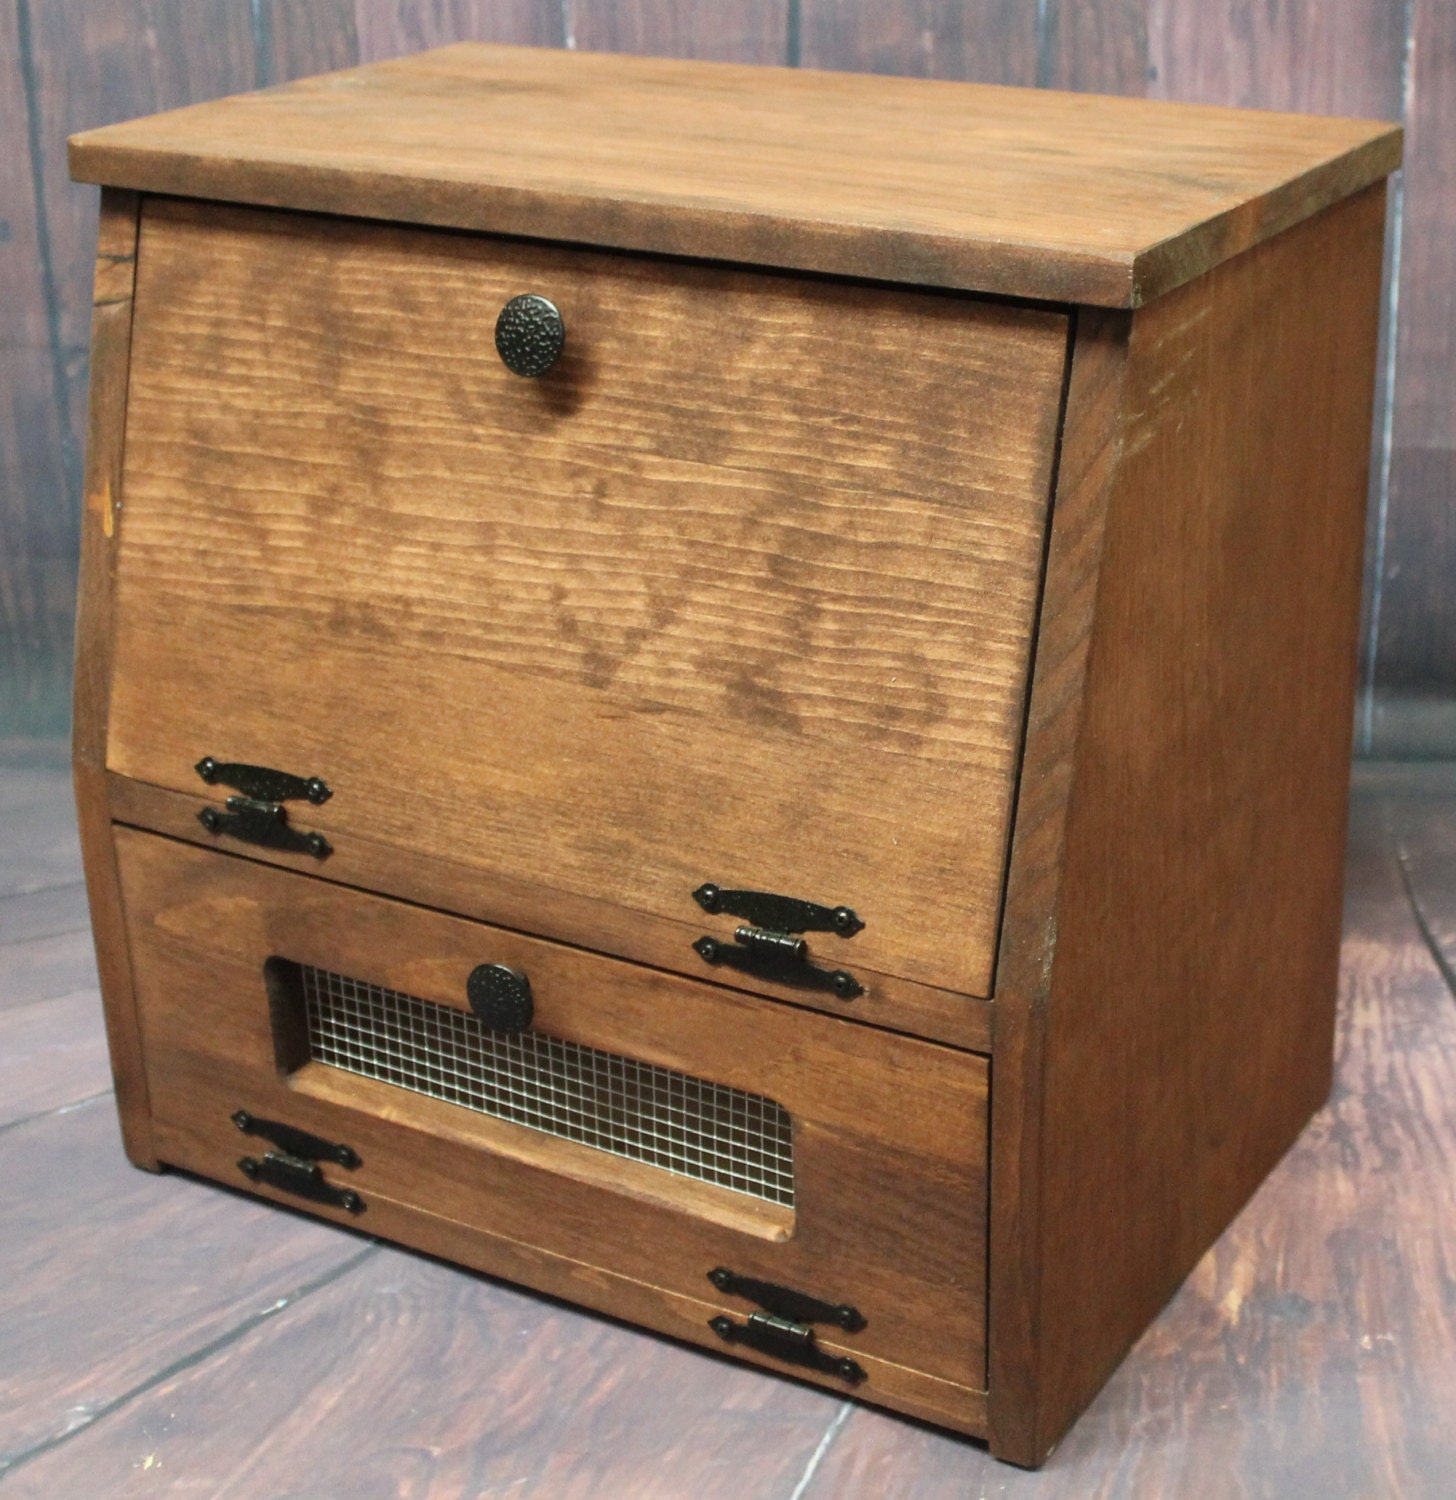 wooden bread box kitchen storage wood vegetable potato bin zoom